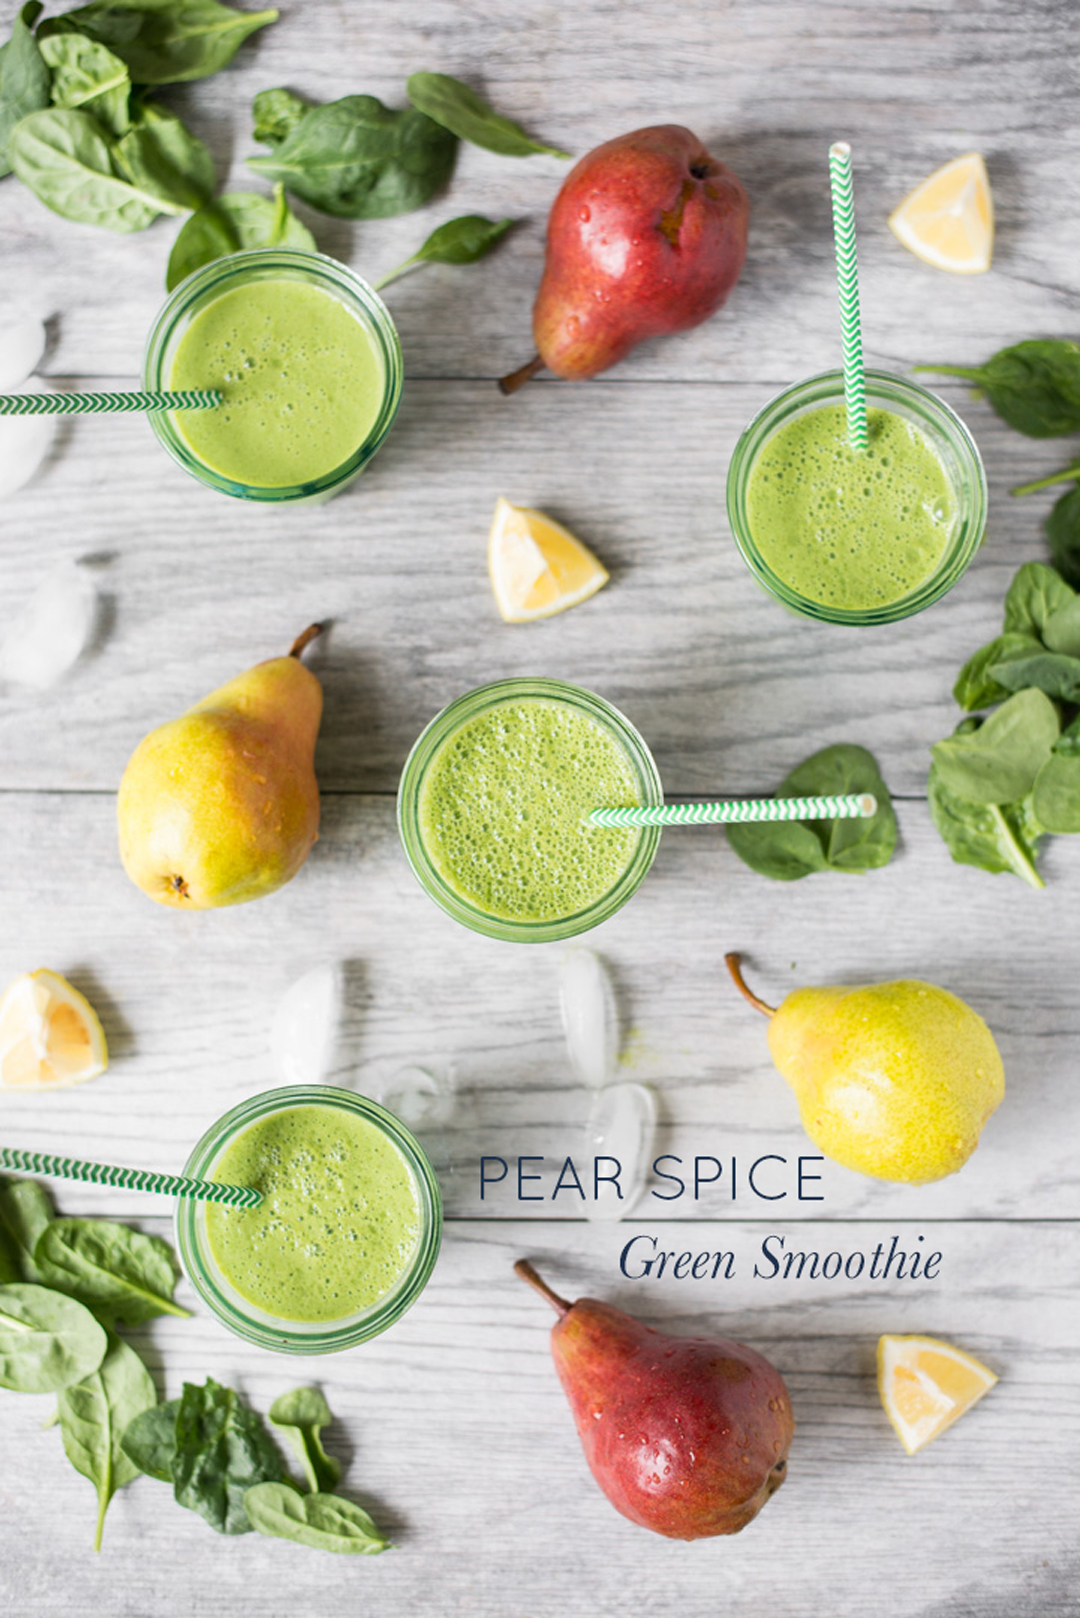 Sweet, spicy and full of green goodness, Pear Spice Green Smoothie is simple to make and a great way to add extra vegetables to your morning routine.